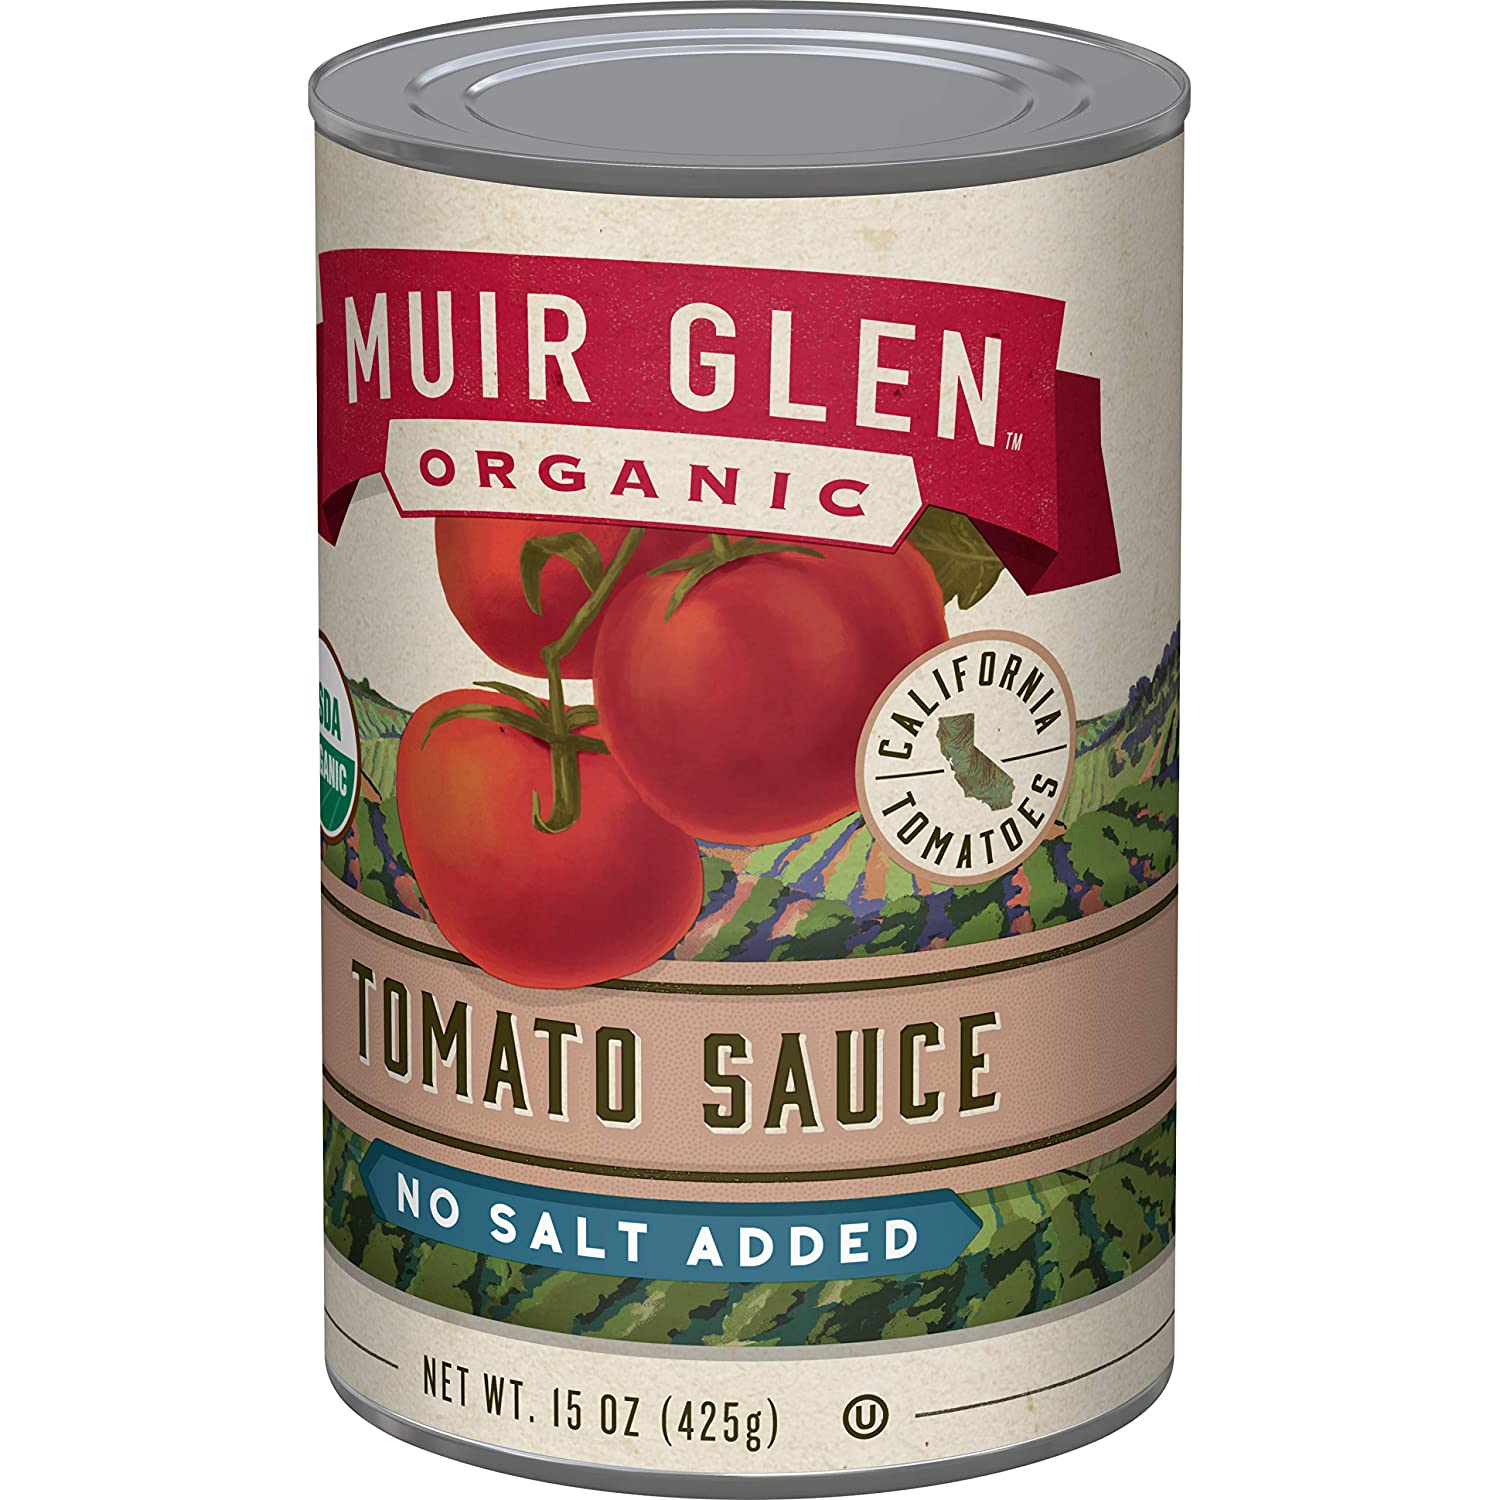 Muir Glen, Organic No Salt Added Tomatoes, 12 Cans, 15 oz